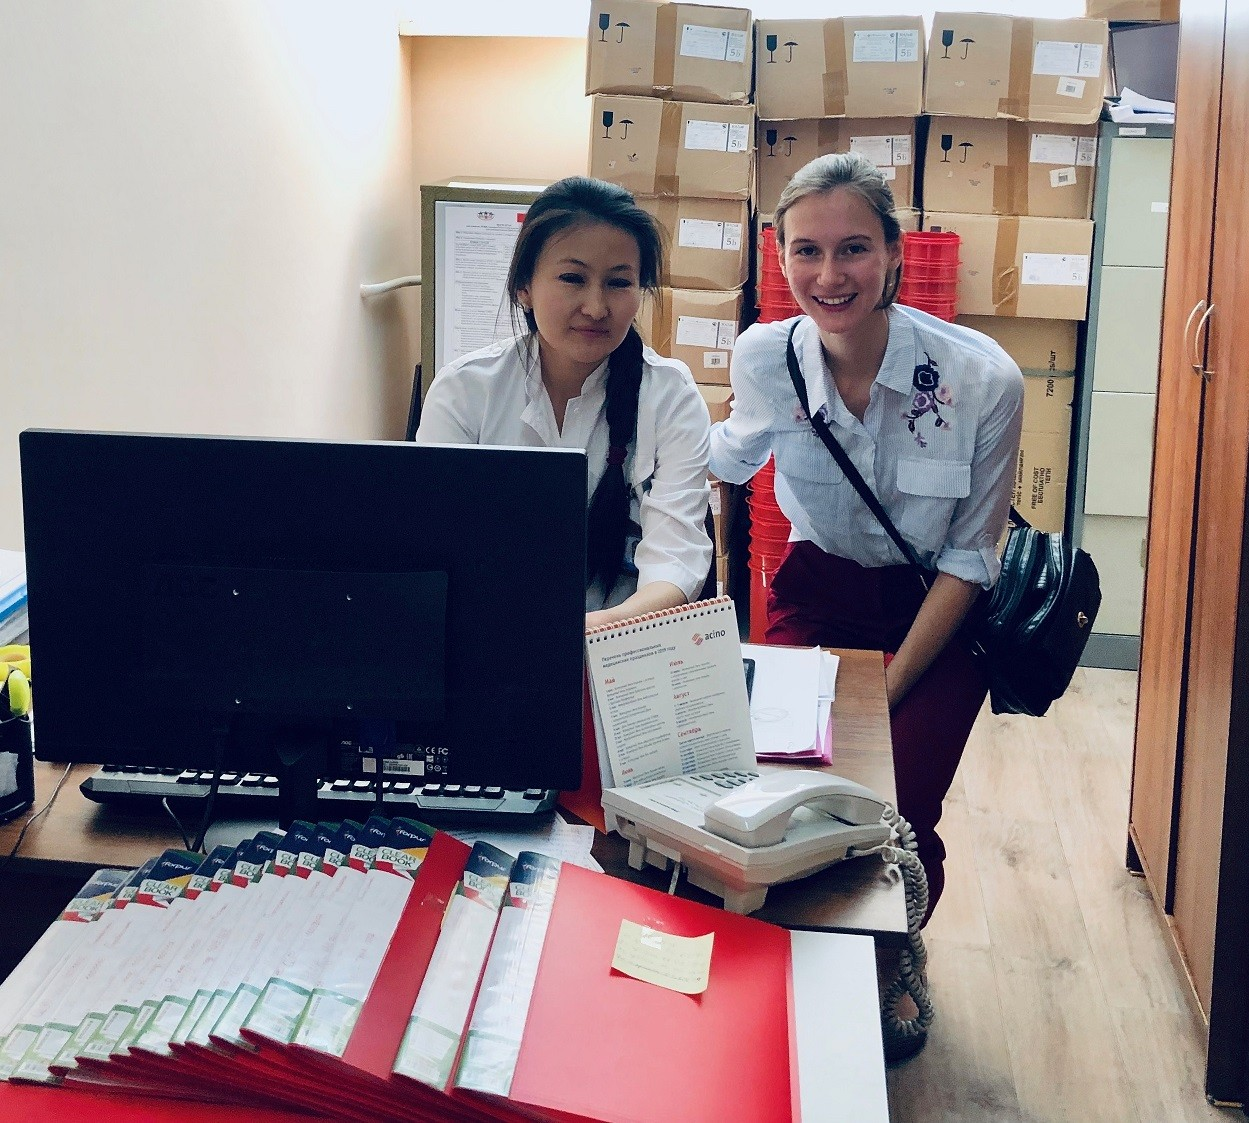 Sophia and a nurse at a Trust Point which provides HIV rapid testing and counseling in Almaty, Kazakhstan